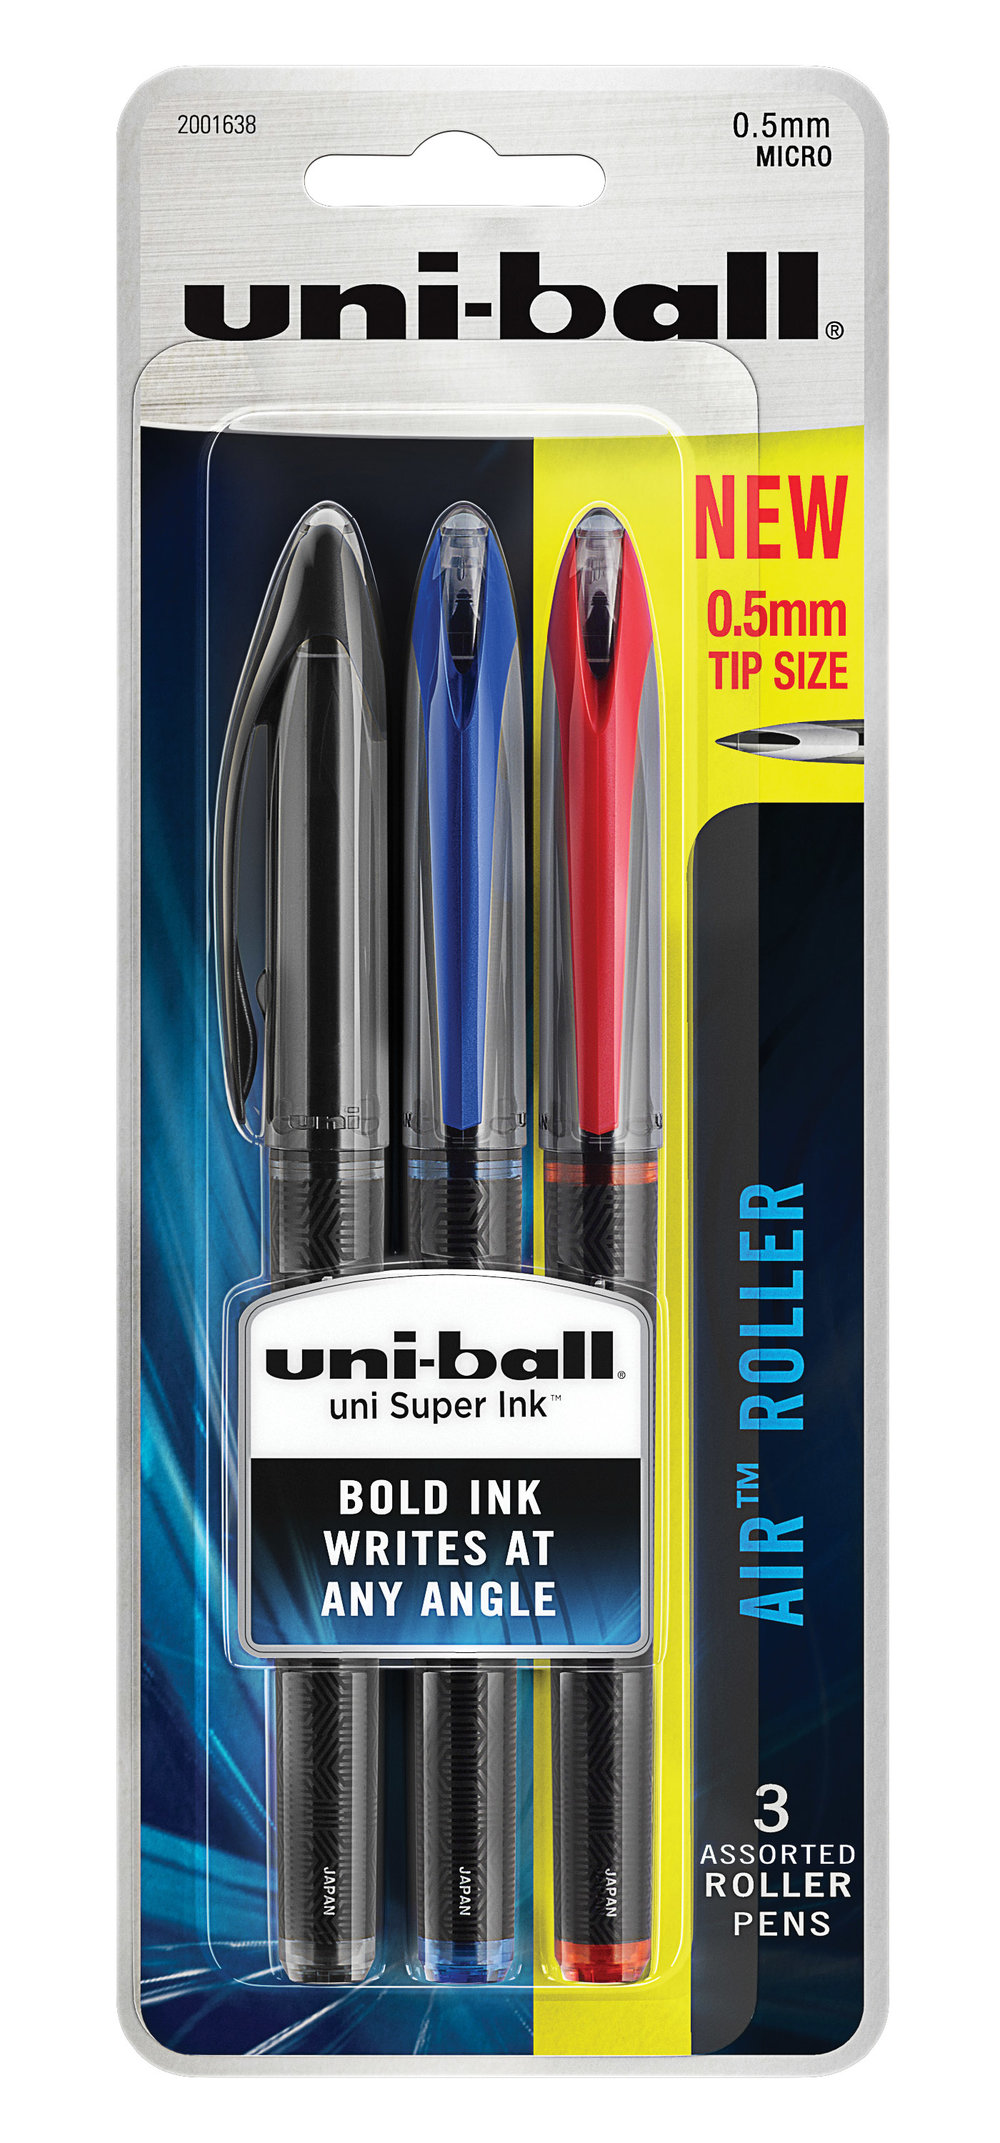 Uniball_Assorted_CMYK.jpg